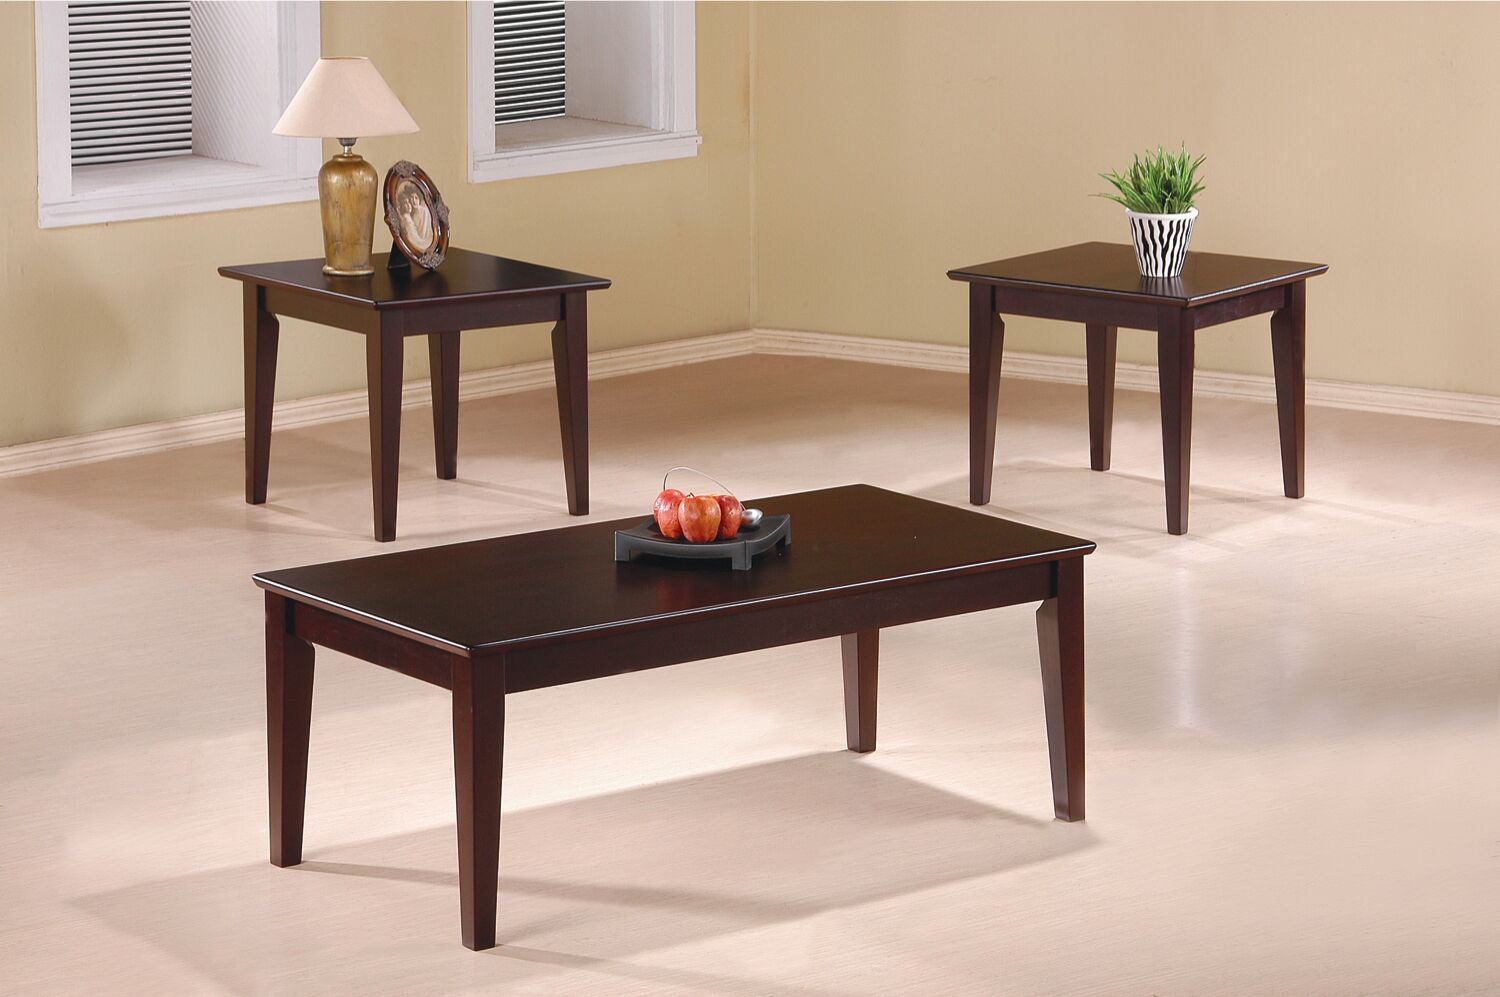 Ione 3 Piece Coffee Table Set